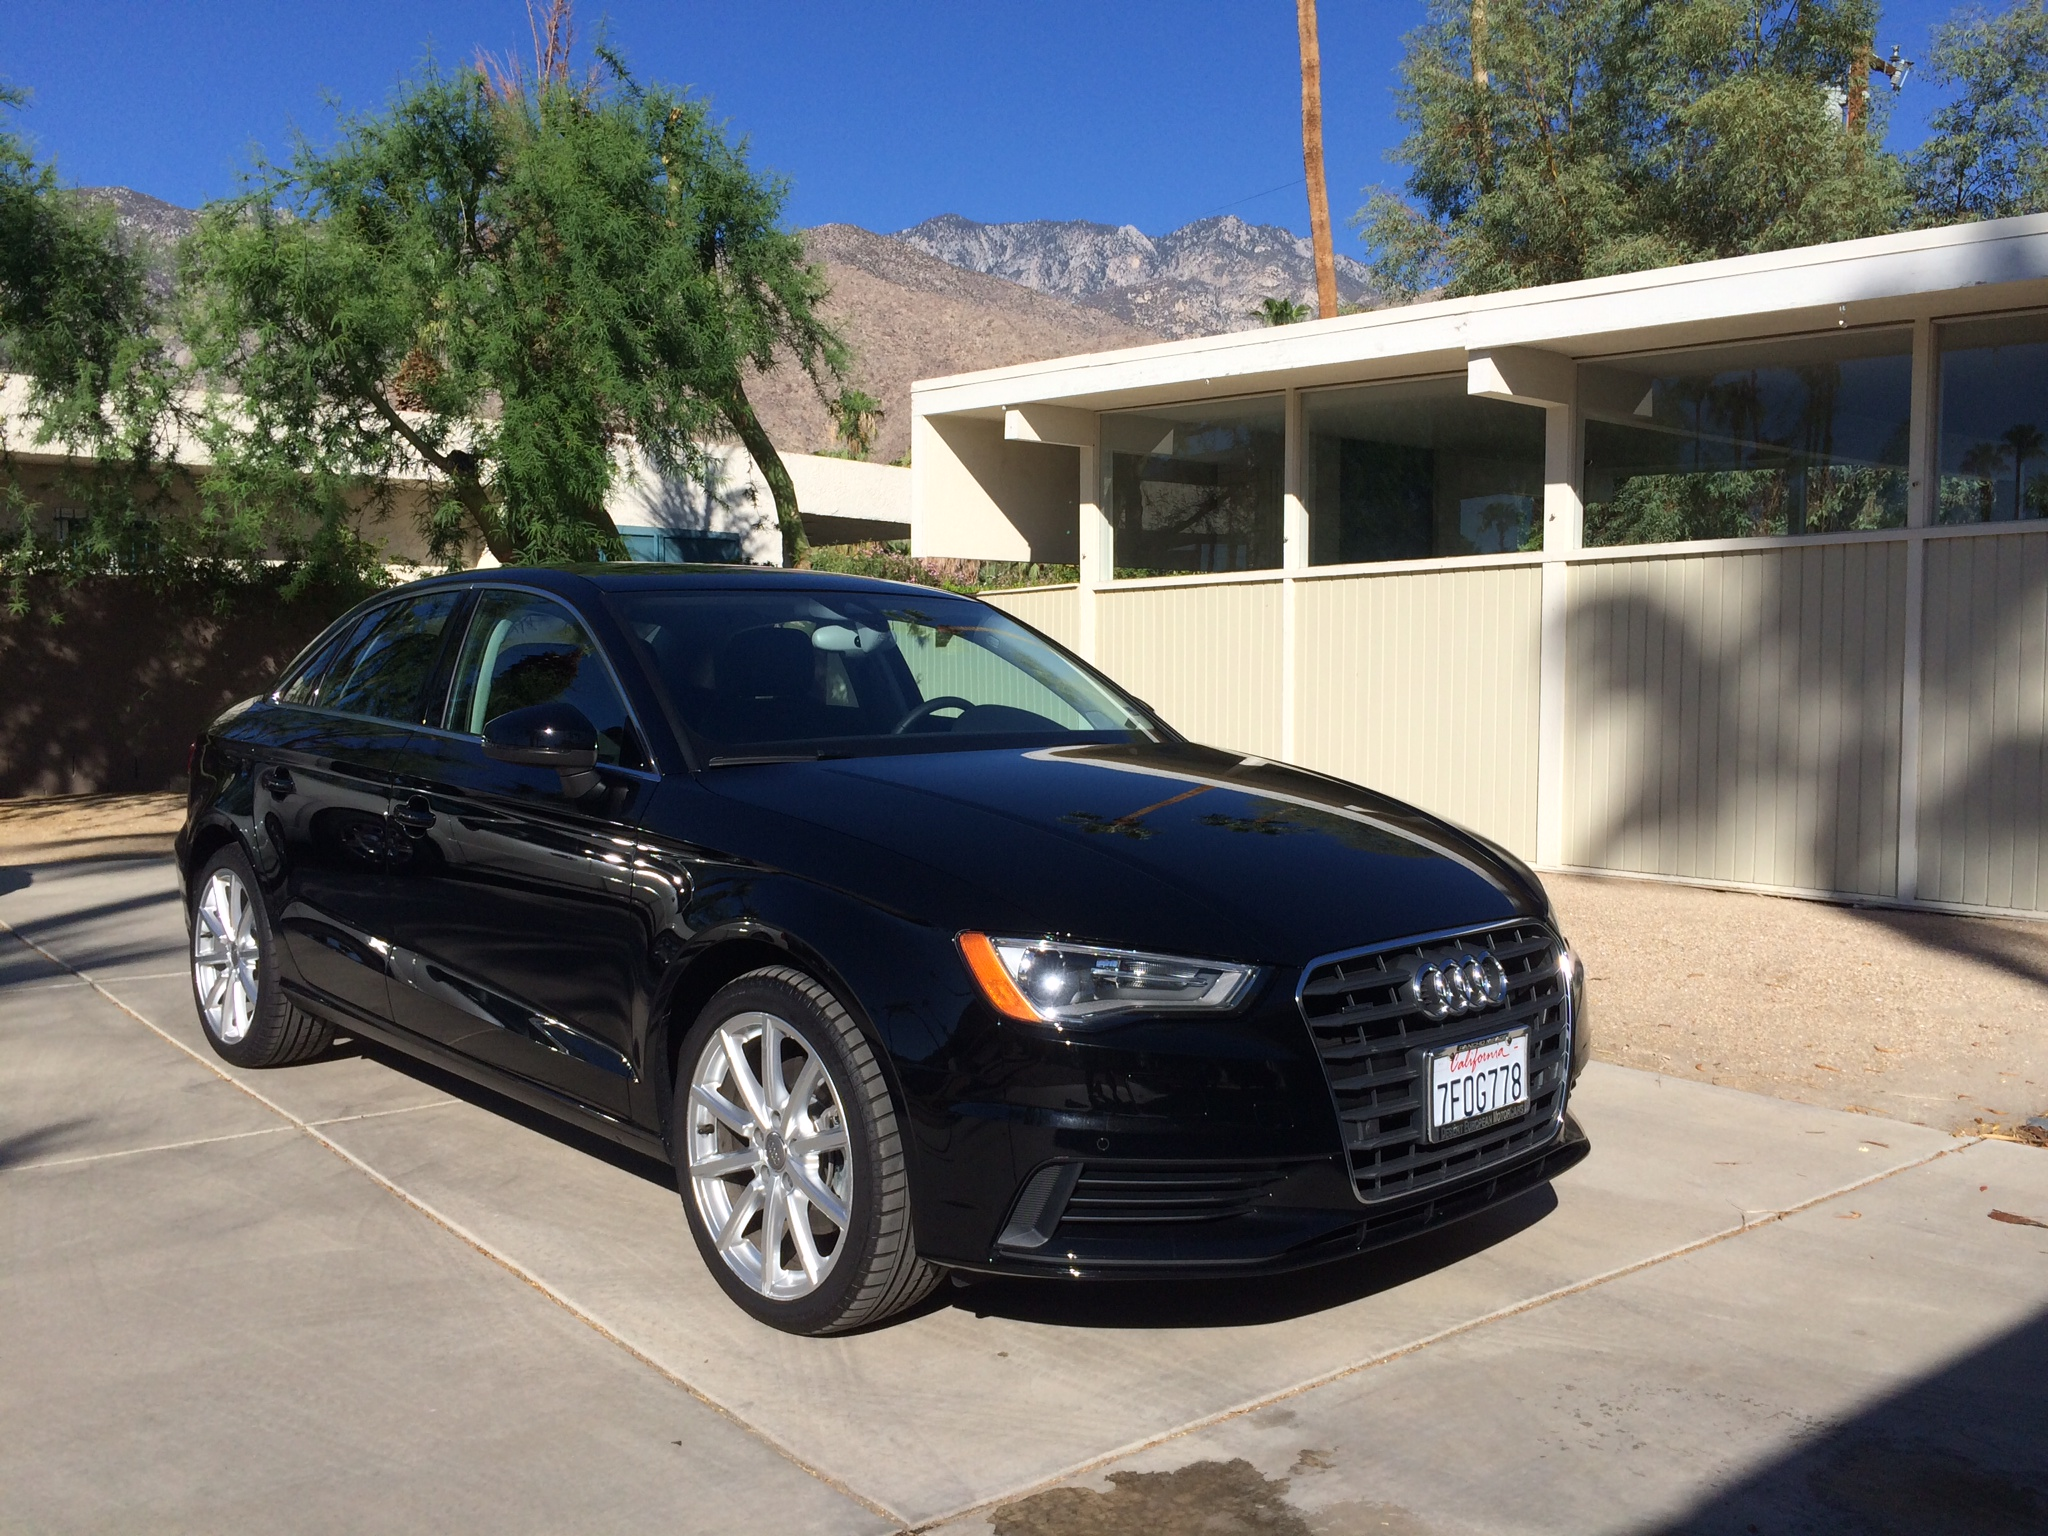 2015 audi a3 audi s entry level at a steep price todd bianco 39 s acarisnotarefrigerator. Black Bedroom Furniture Sets. Home Design Ideas